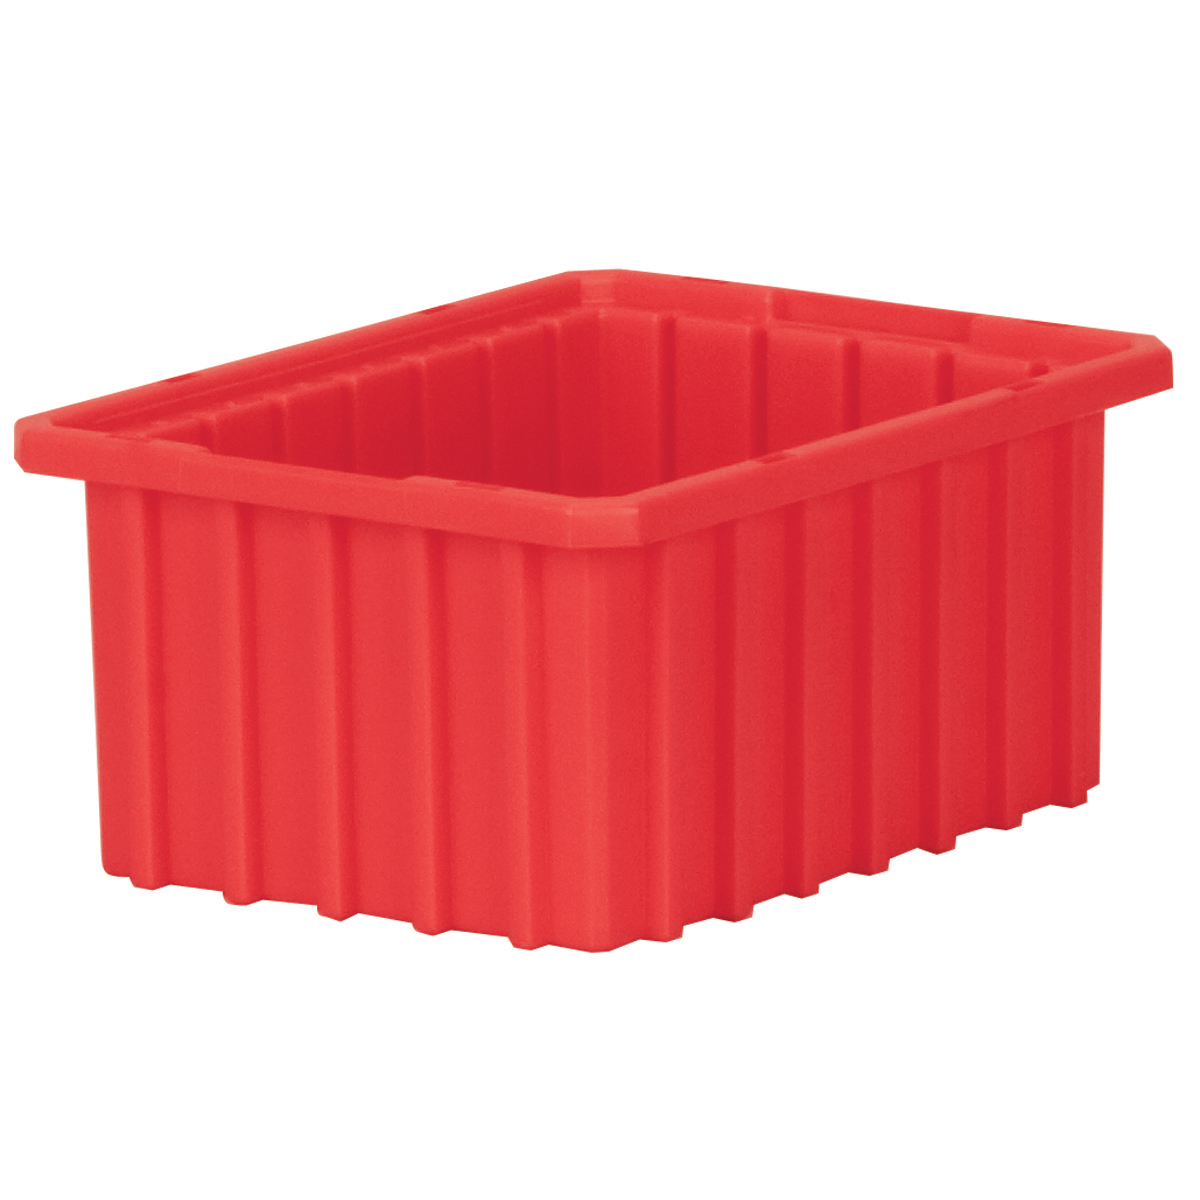 Akro-Grid Dividable Box 10-7/8 x 8-1/4 x 5, Red (33105RED).  This item sold in carton quantities of 20.